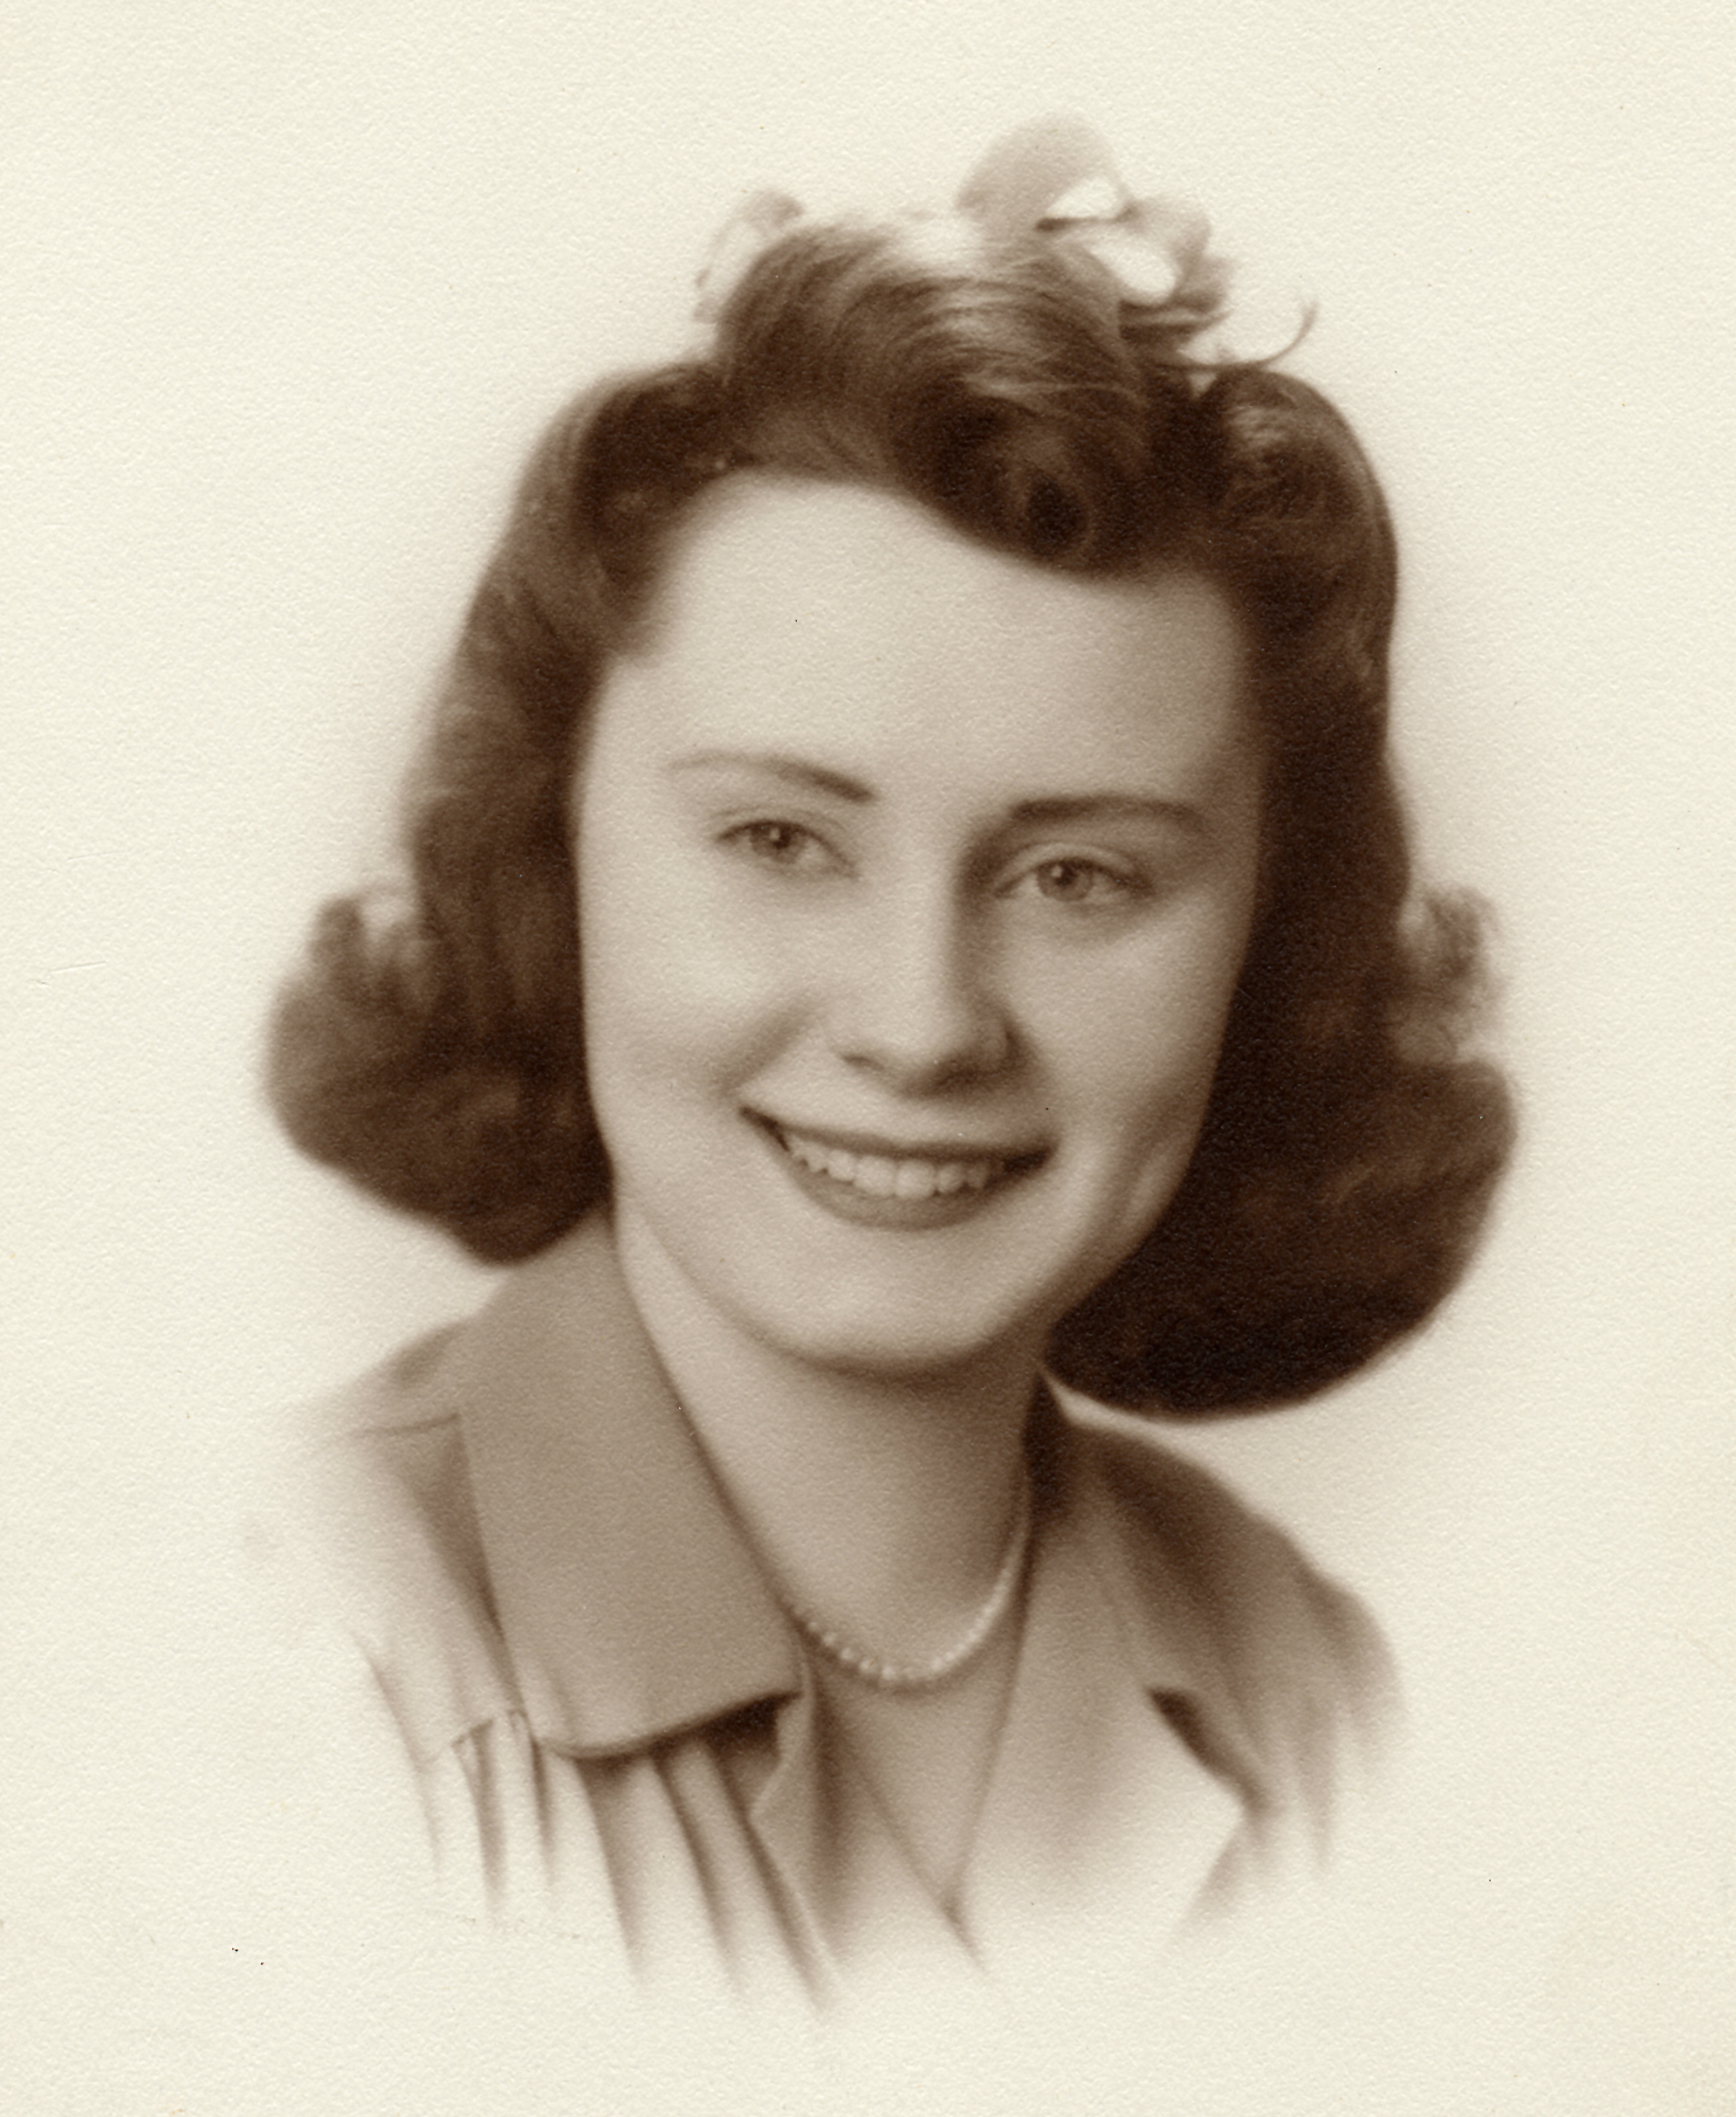 braun-mom-portrait.jpg